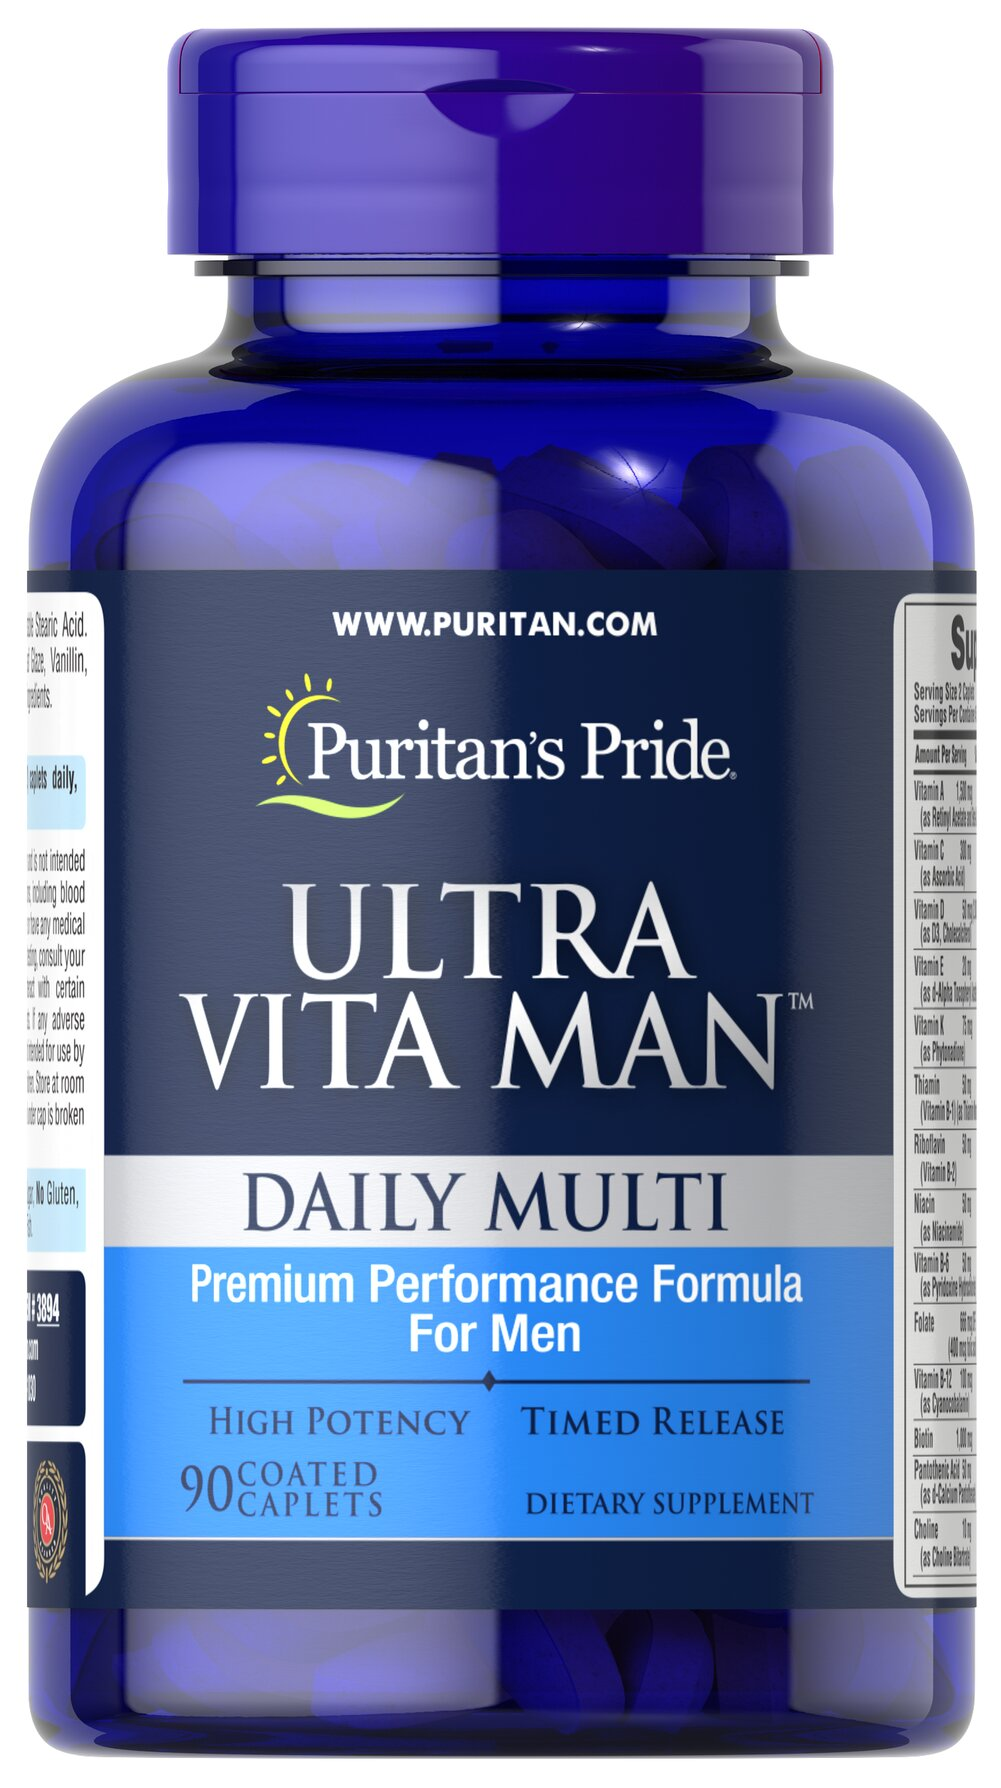 Ultra Vita Man™ Time Release <p>This time release multivitamins  delivers vitamins and minerals shown to be beneficial to men's overall wellness. From antioxidant and immune support to cardiovascular health, Ultra Vita Man is ideal for today's on-the-go men!**</p> 90 Caplets  $22.23